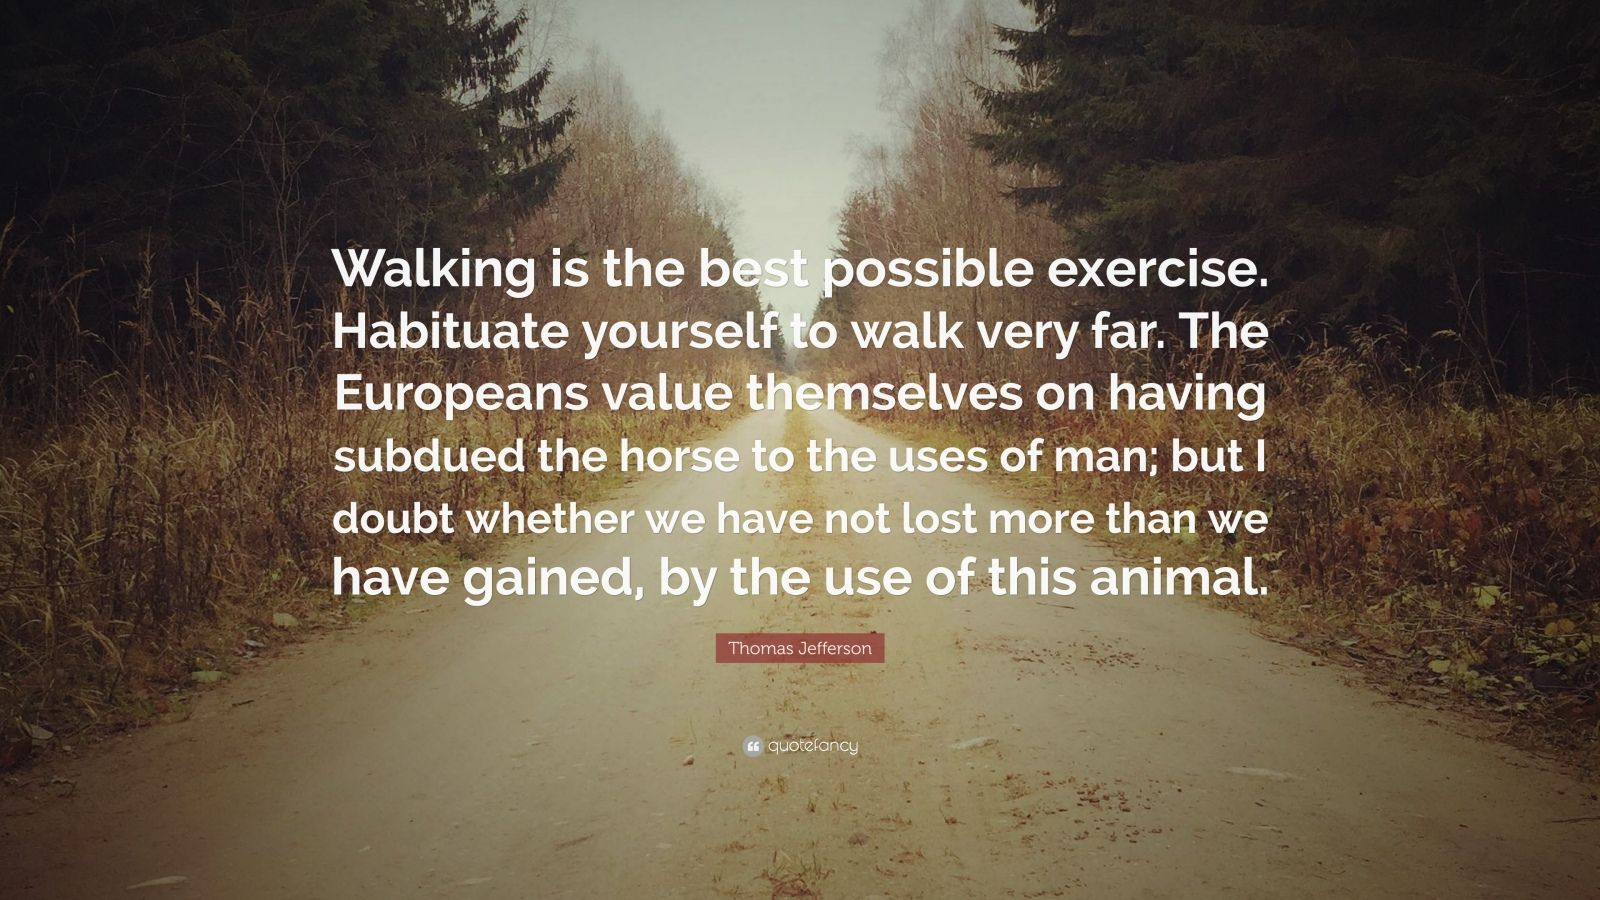 "Thomas Jefferson Quote: ""Walking is the best possible exercise. Habituate yourself to walk very far. The Europeans value themselves on having subdued the horse to the uses of man; but I doubt whether we have not lost more than we have gained, by the use of this animal."""